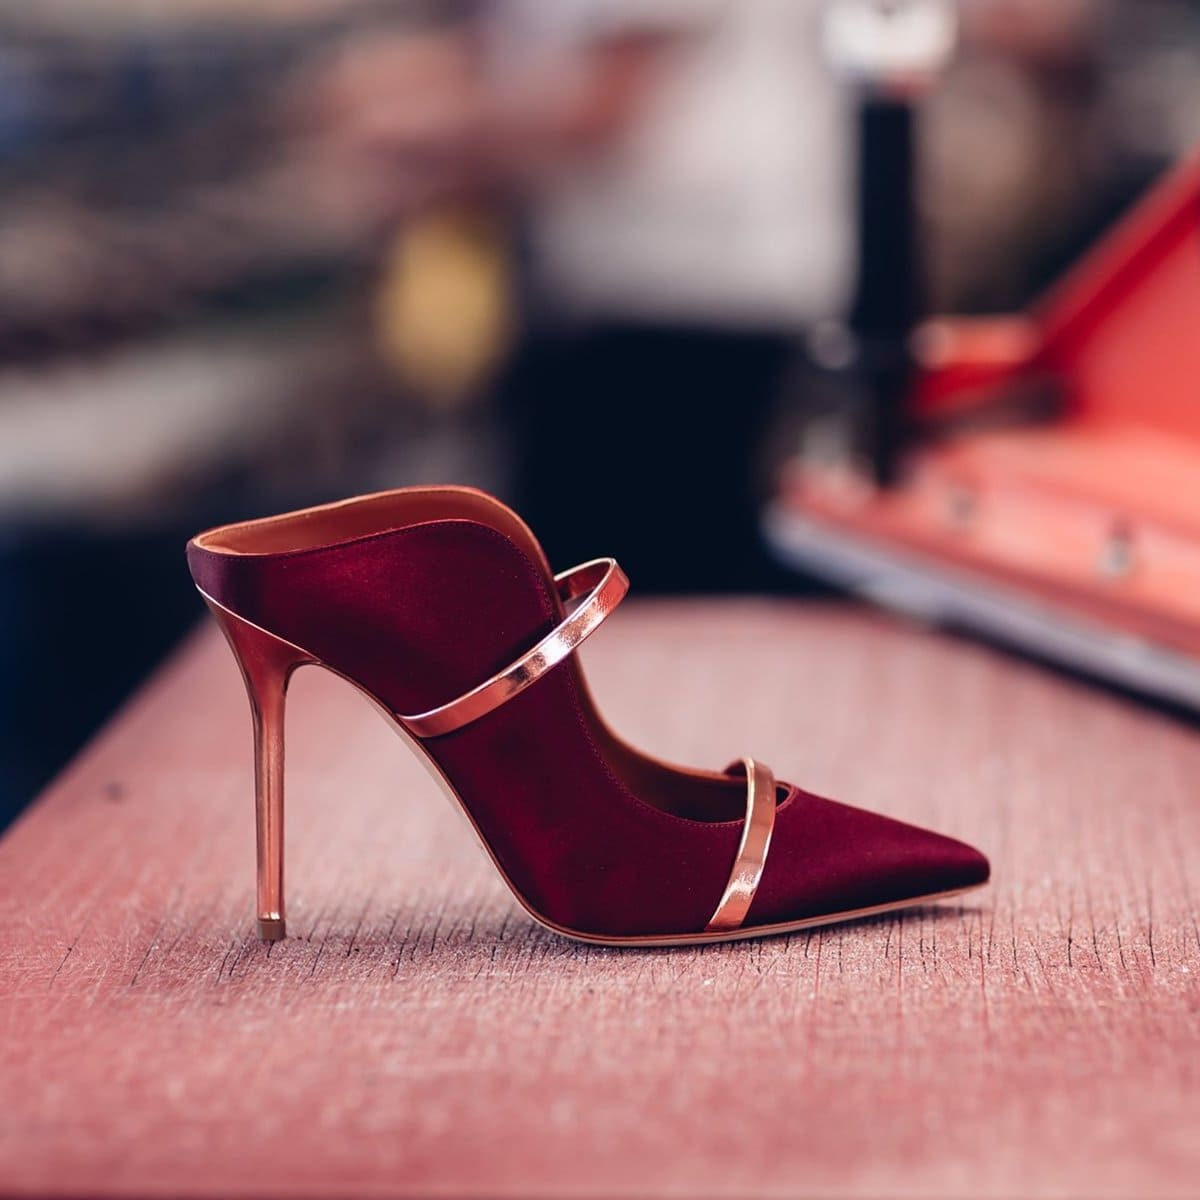 The iconic Maureen mules from London-based label Malone Souliers in lustrous wine-red satin with glossed rose gold leather panels